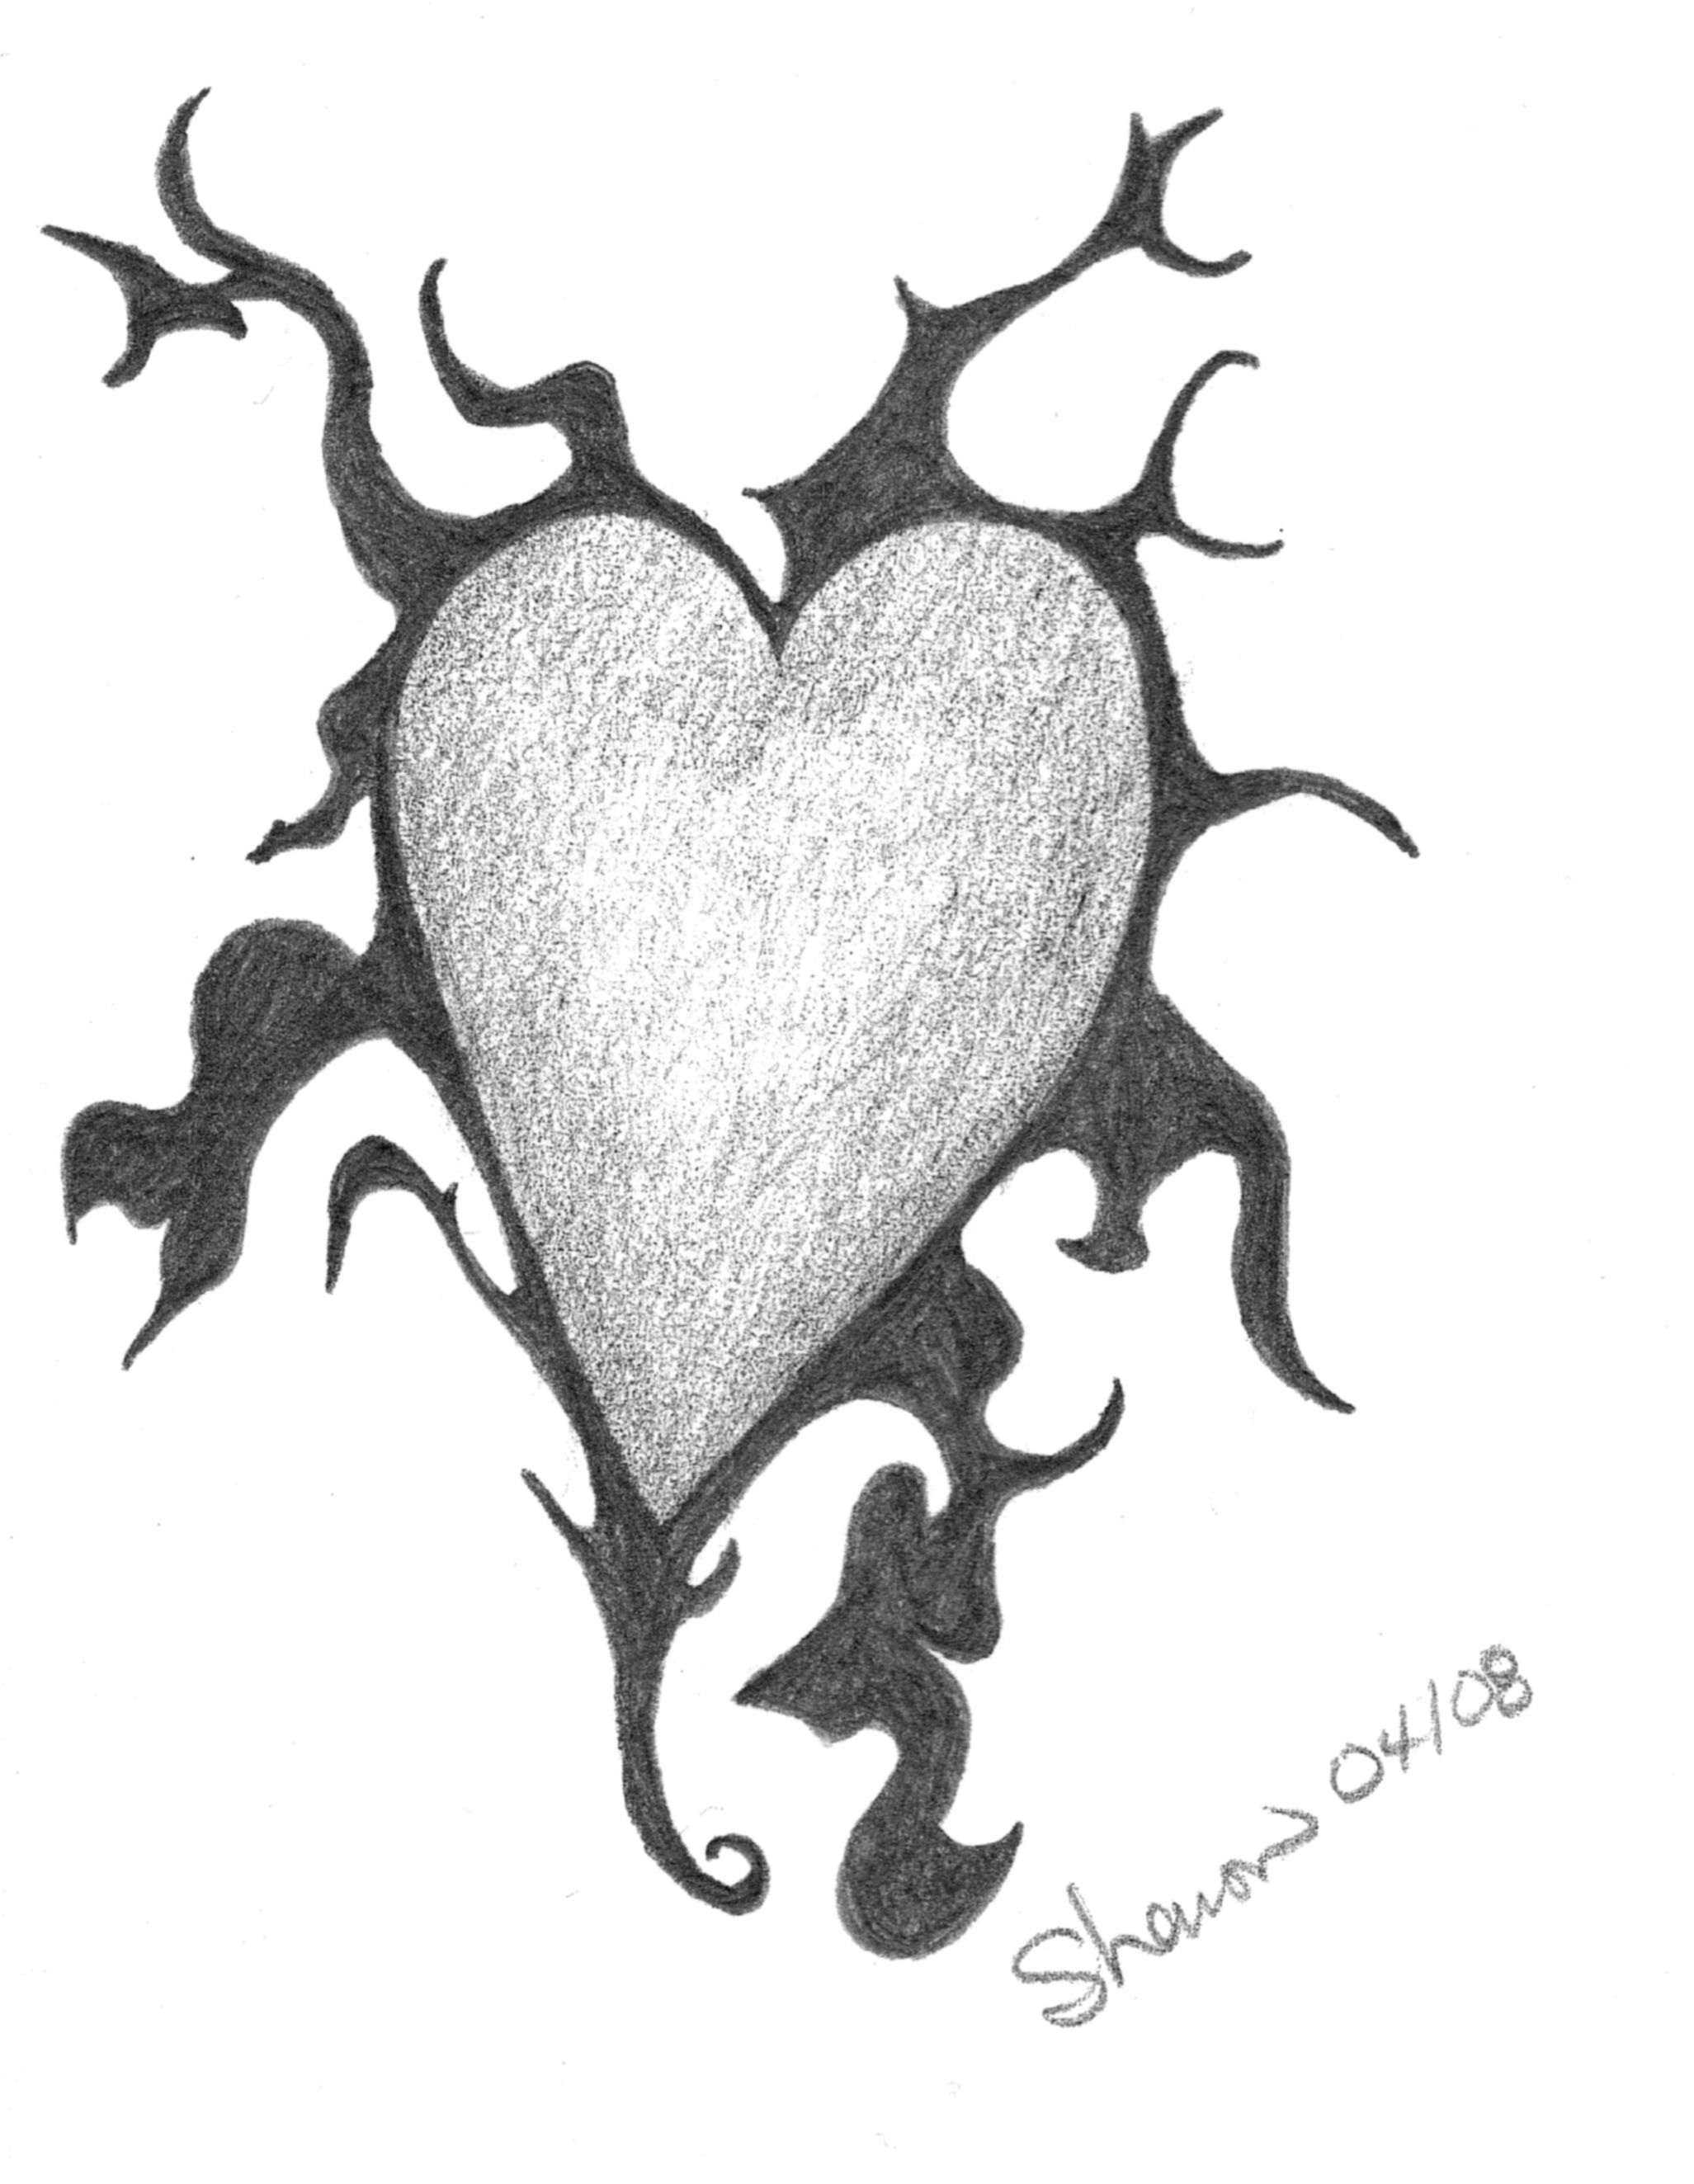 graphite drawing of heart with flame like flourishes my random Randoms Book graphite drawing of heart with flame like flourishes random drawings graphite drawings drawing